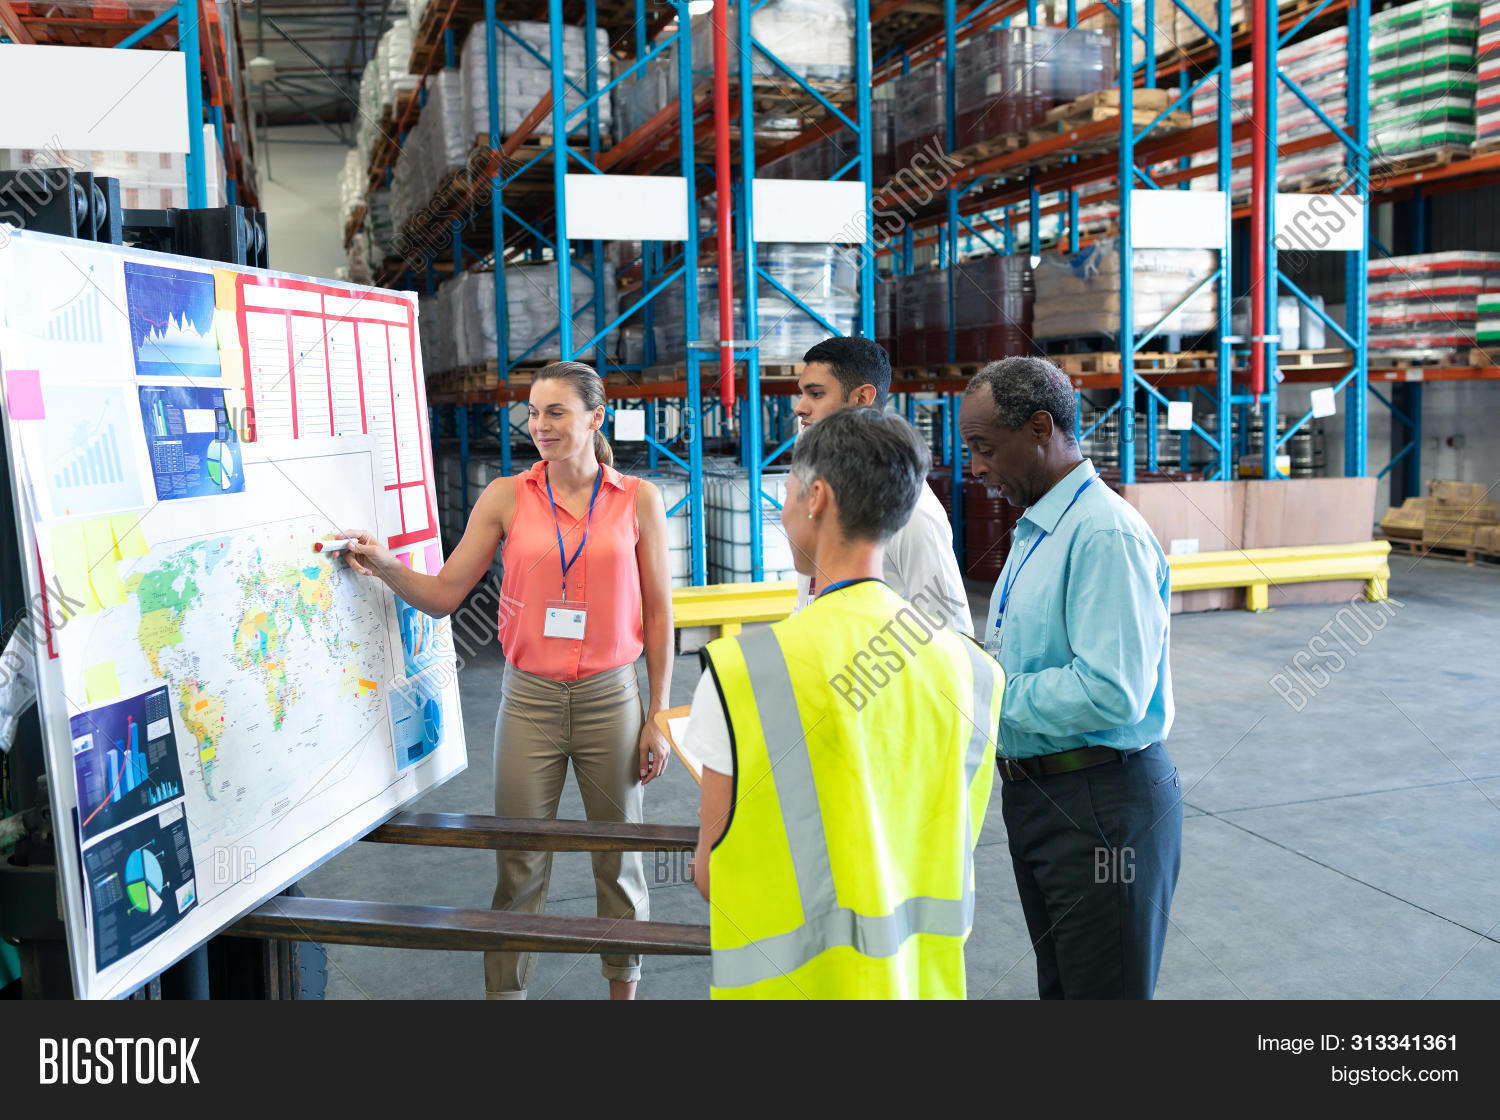 african ethnicity,black,business,caucasian,caucasian ethnicity,commercial,coworker,distribution,distribution warehouse,expertise,factory,female,freight,freight transportation,graph,industry,inventory,logistics,male,man,management,manager,map,mature adult,mature men,mature women,mid adult,mid adult women,mixed-race,mixed-race person,occupation,packaging,pallet rack,professional,progress,shipping,skill,staff,statistics,stock,storage,storehouse,supervisor,supply,warehouse,woman,workplace,young adult,young men